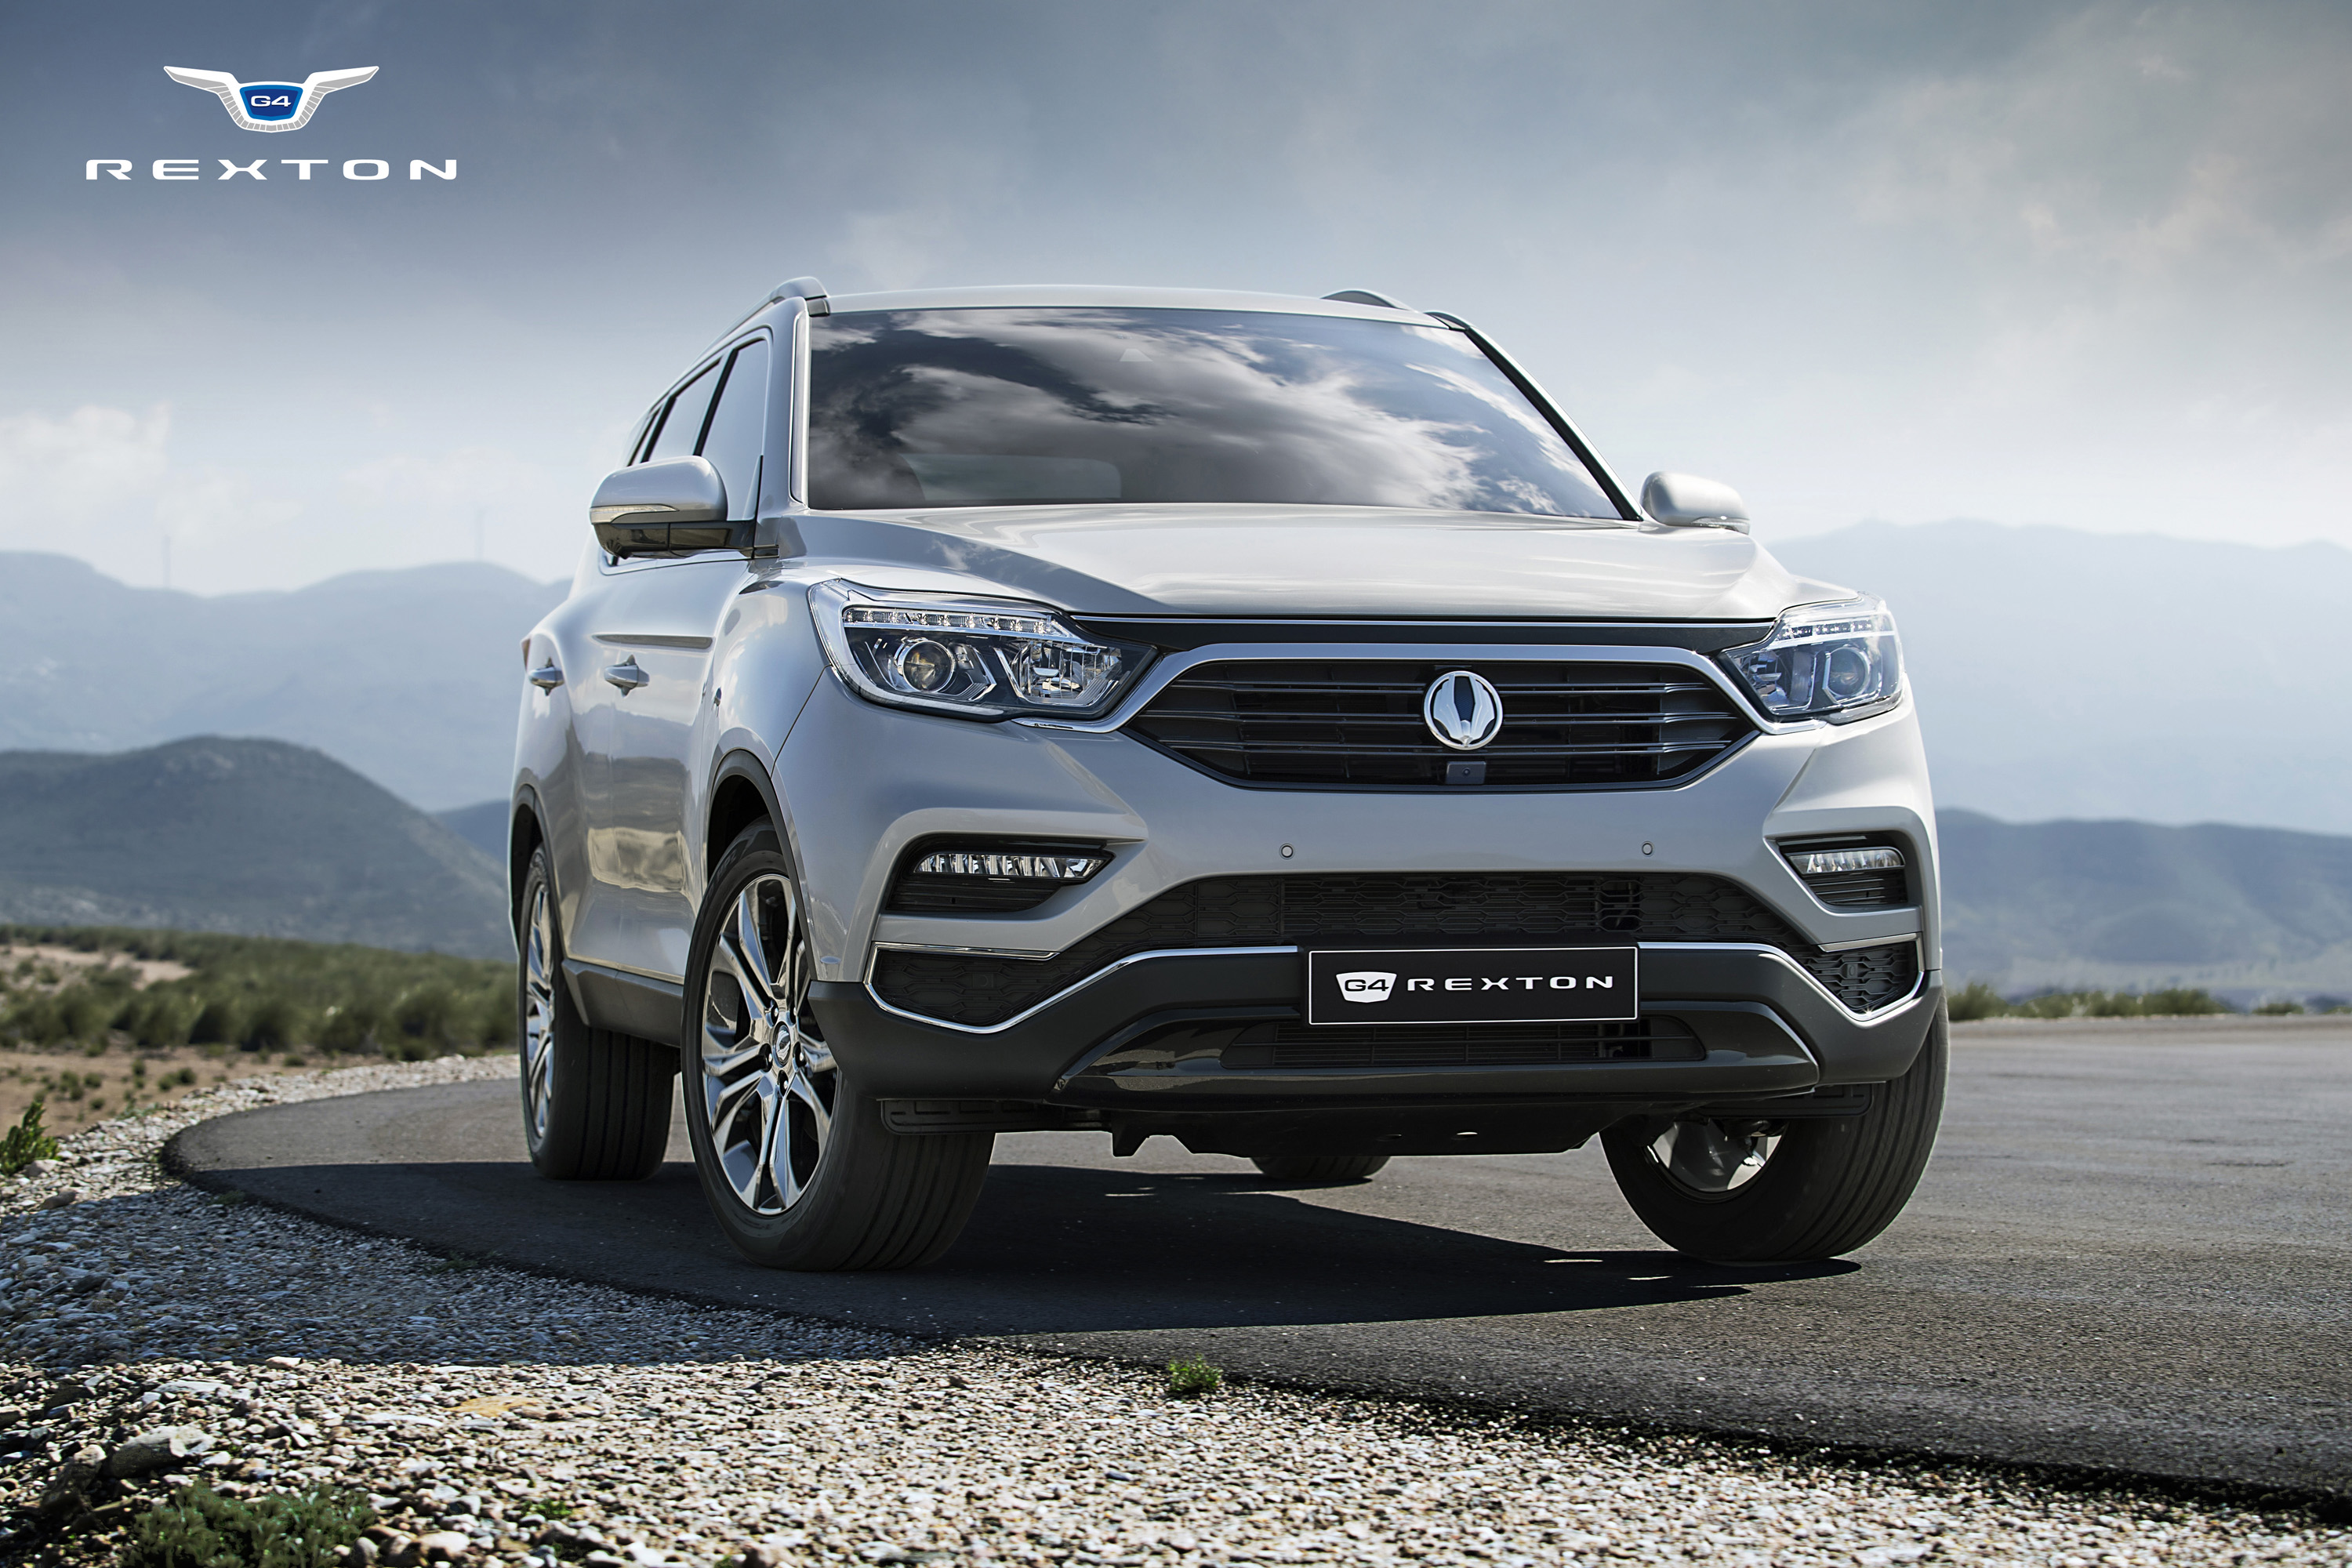 The G4 Rexton of Ssangyong Motor.